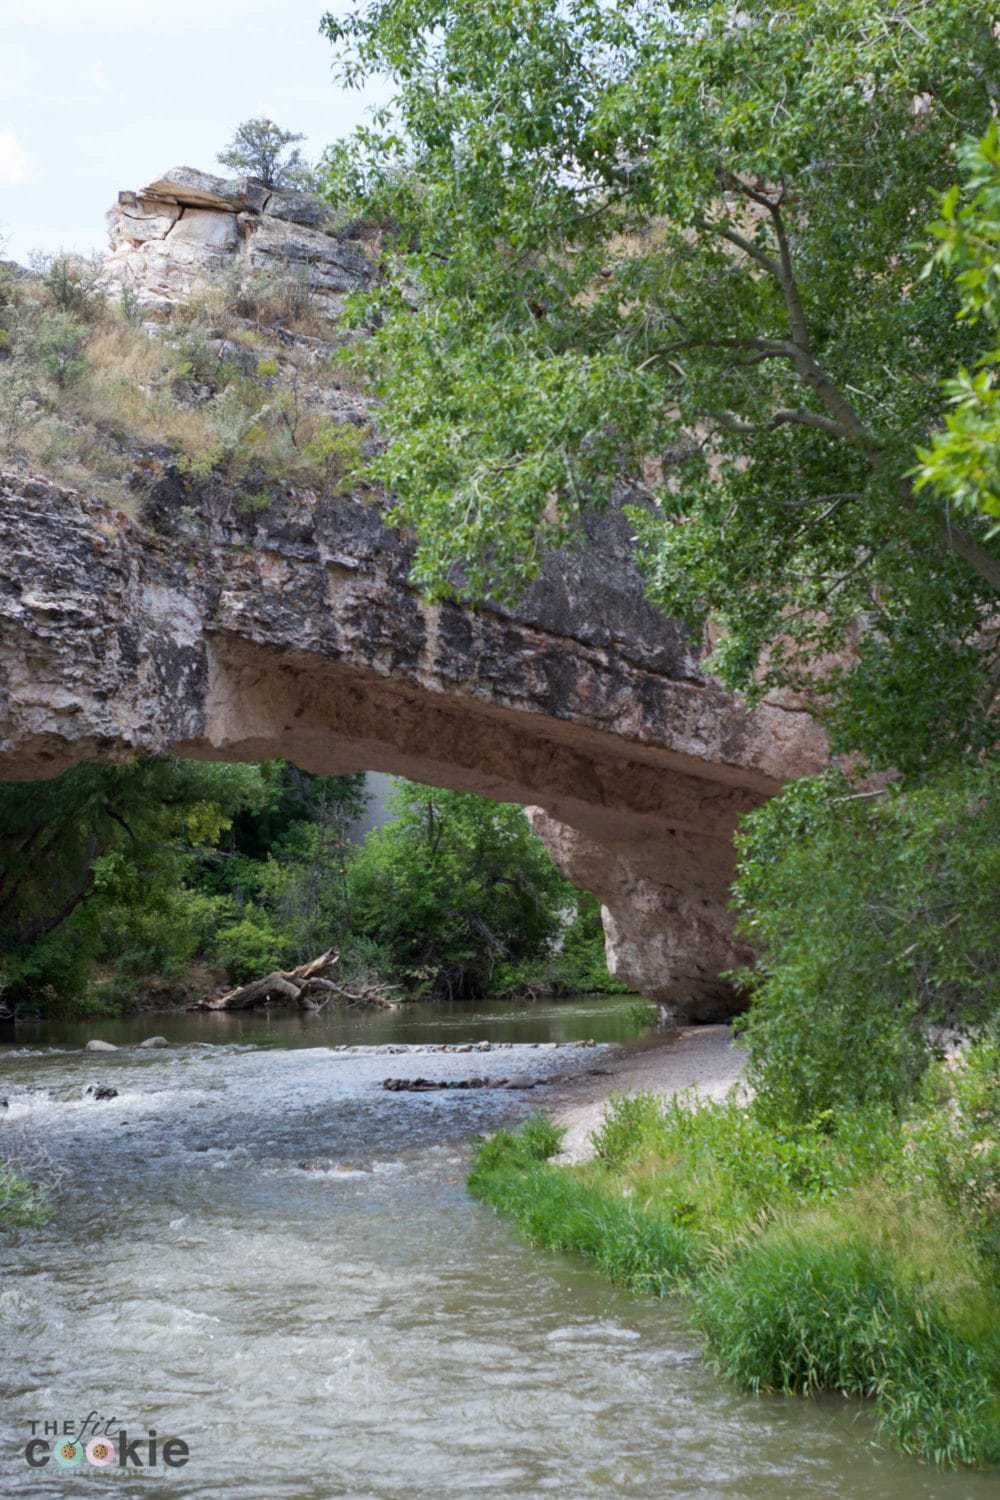 Explore the natural beauty of Wyoming and visit Ayres Bridge outside of Douglas, it's a fun place to explore and have a picnic! - @TheFitCookie #travel #Wyoming #explore